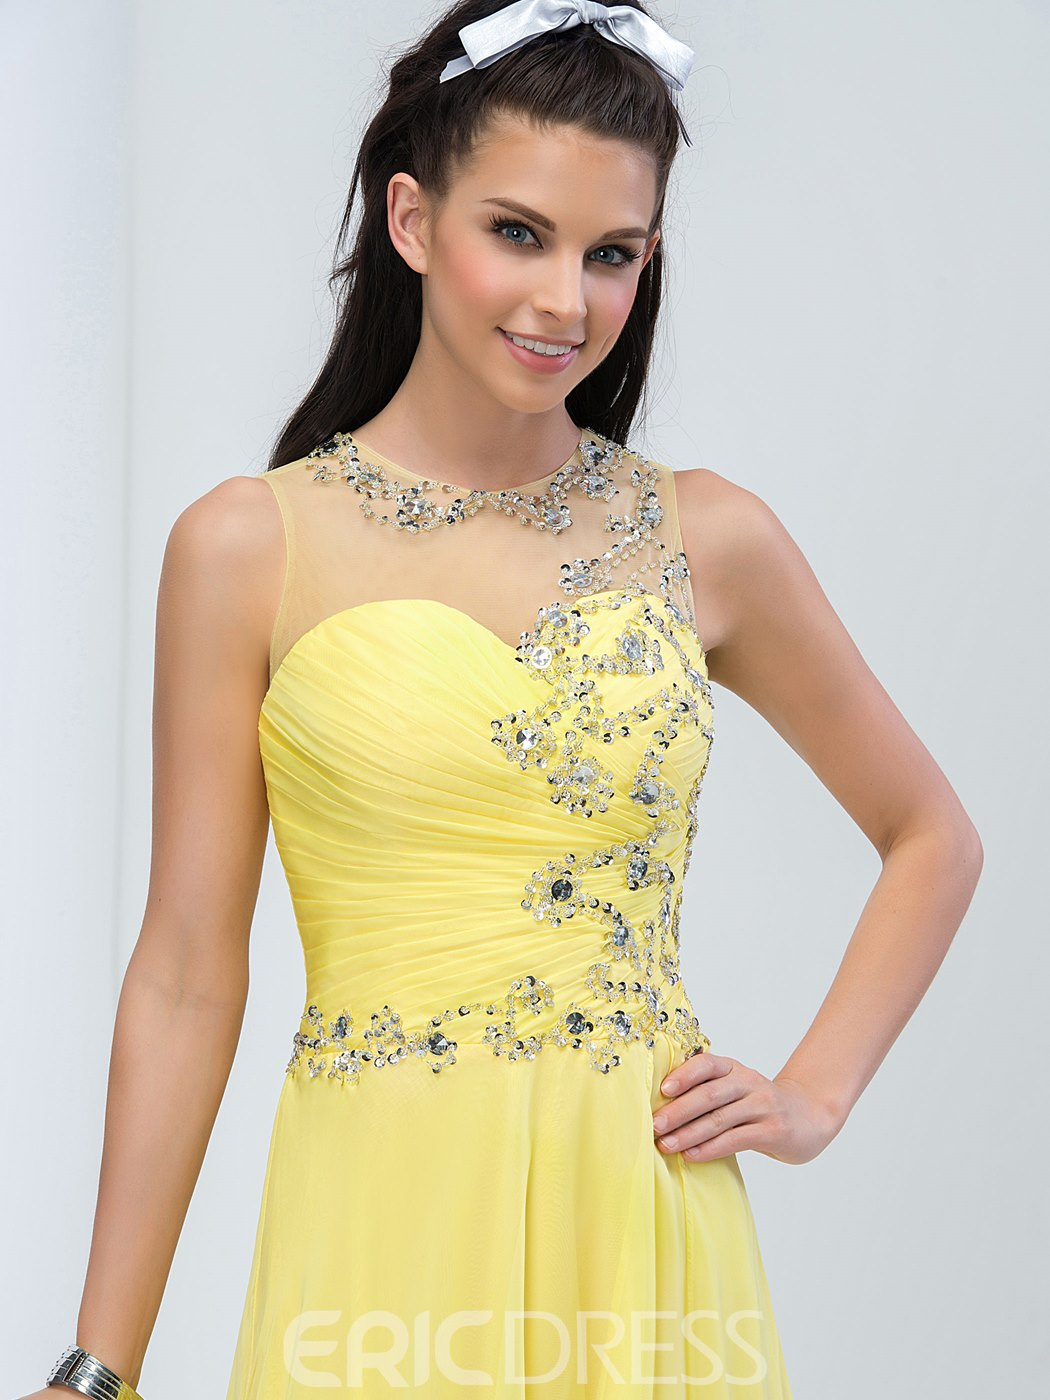 Ericdress perles plis côté rabattable Long Prom Dress